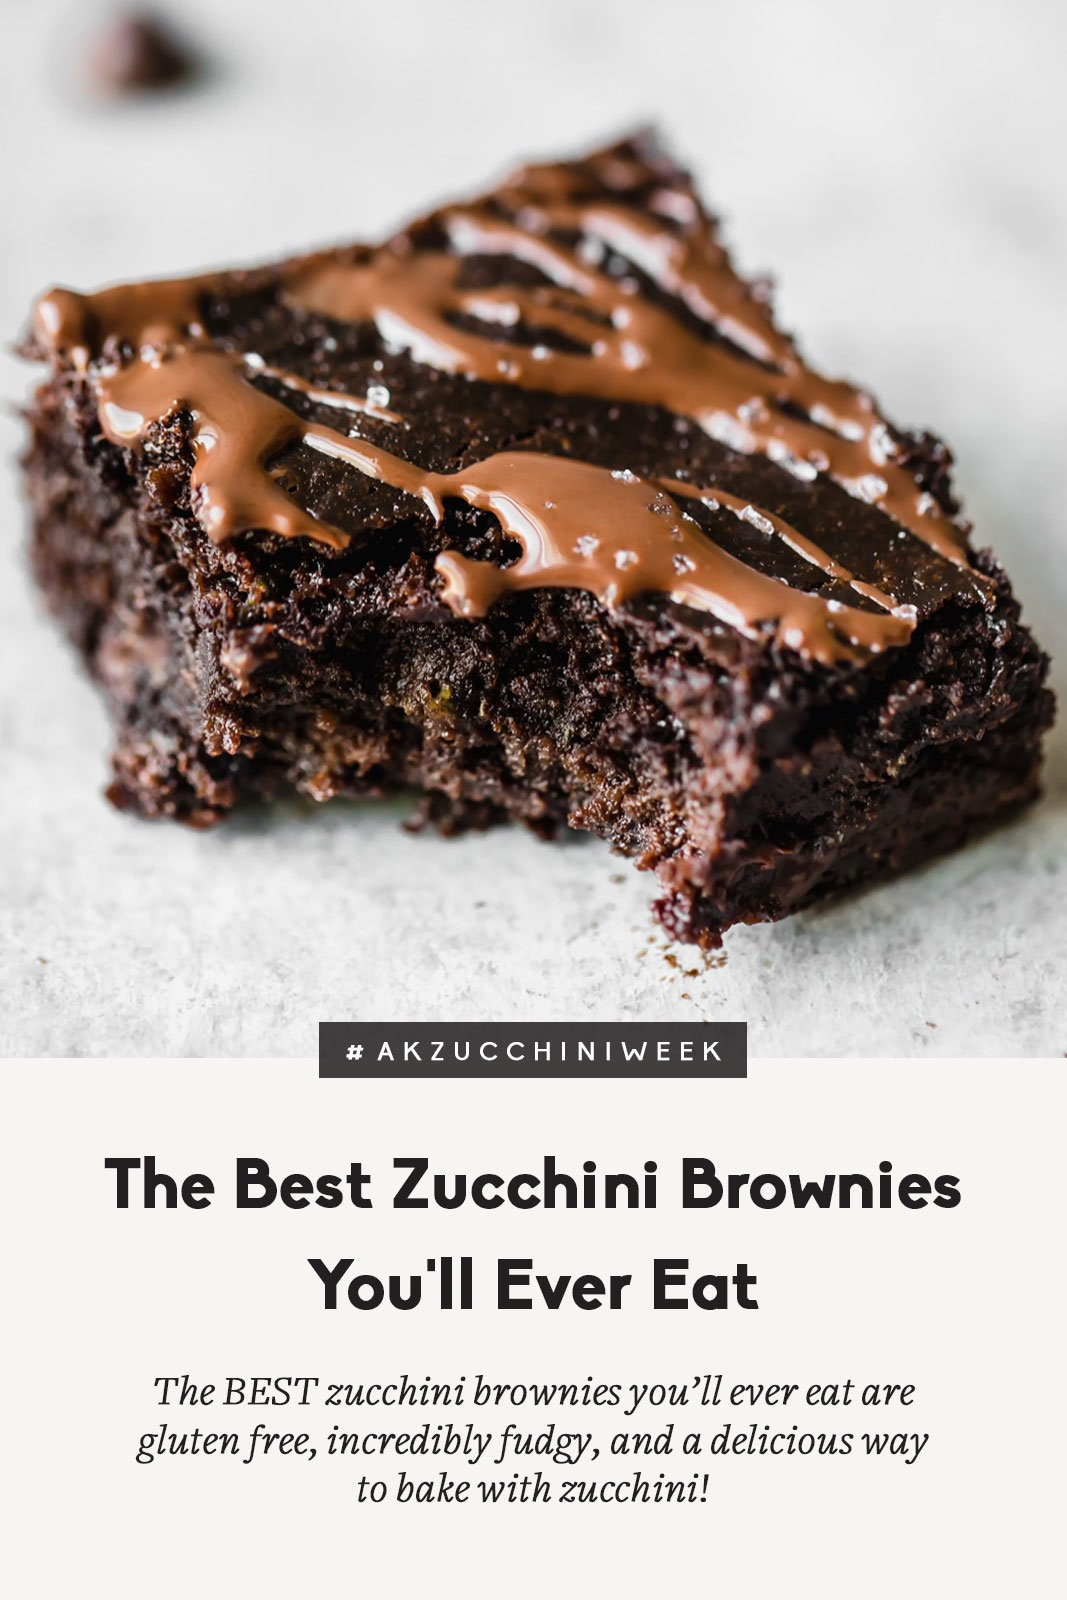 The BEST zucchini brownies you'll ever eat are gluten free, deliciously fudgy, and the perfect way to bake with zucchini. Top them with fancy sea salt to make them extra special!